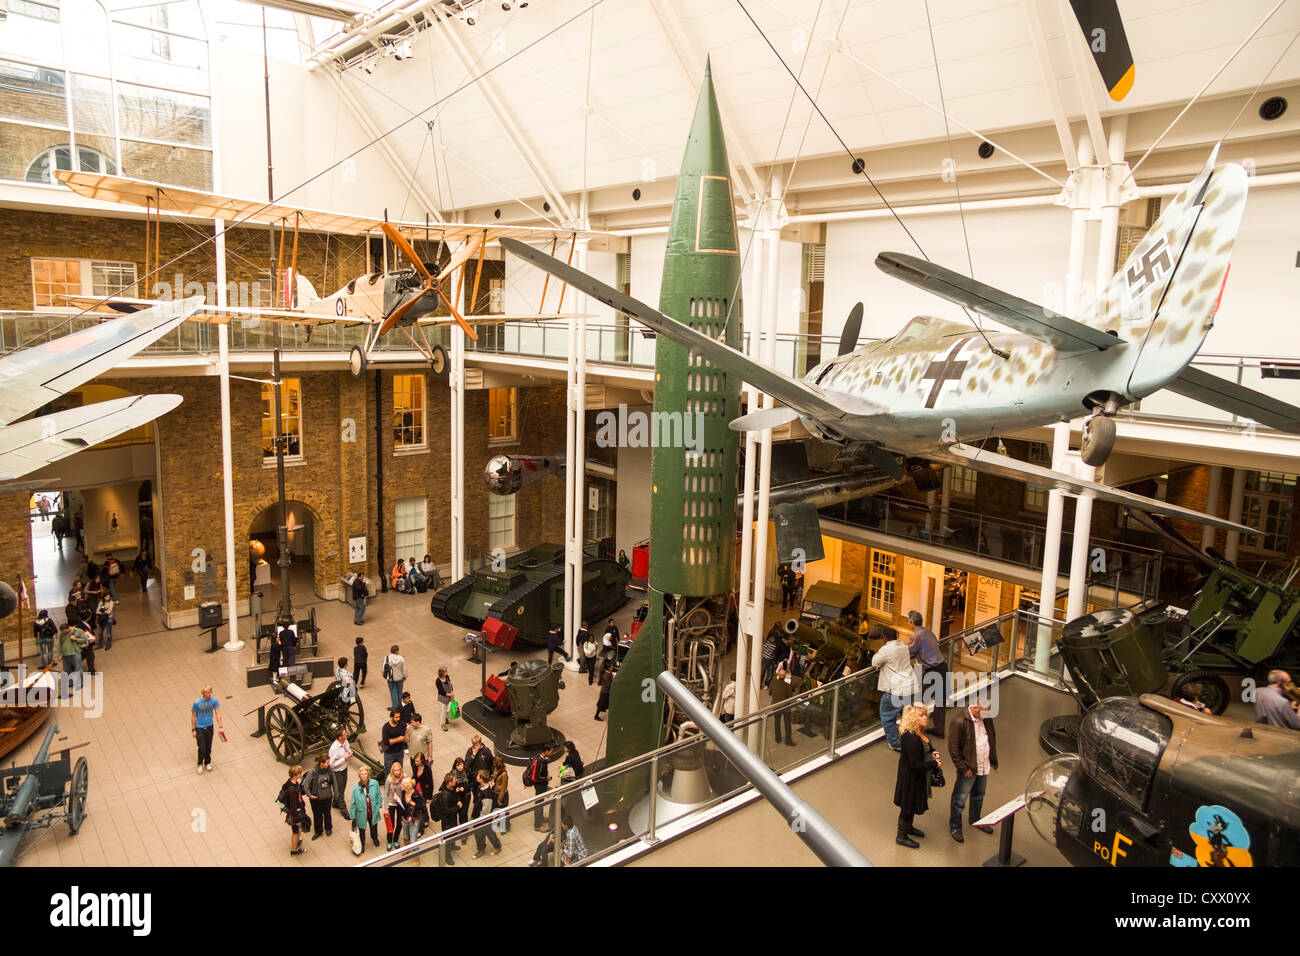 Inside view of Imperial War Museum, London, UK - Stock Image